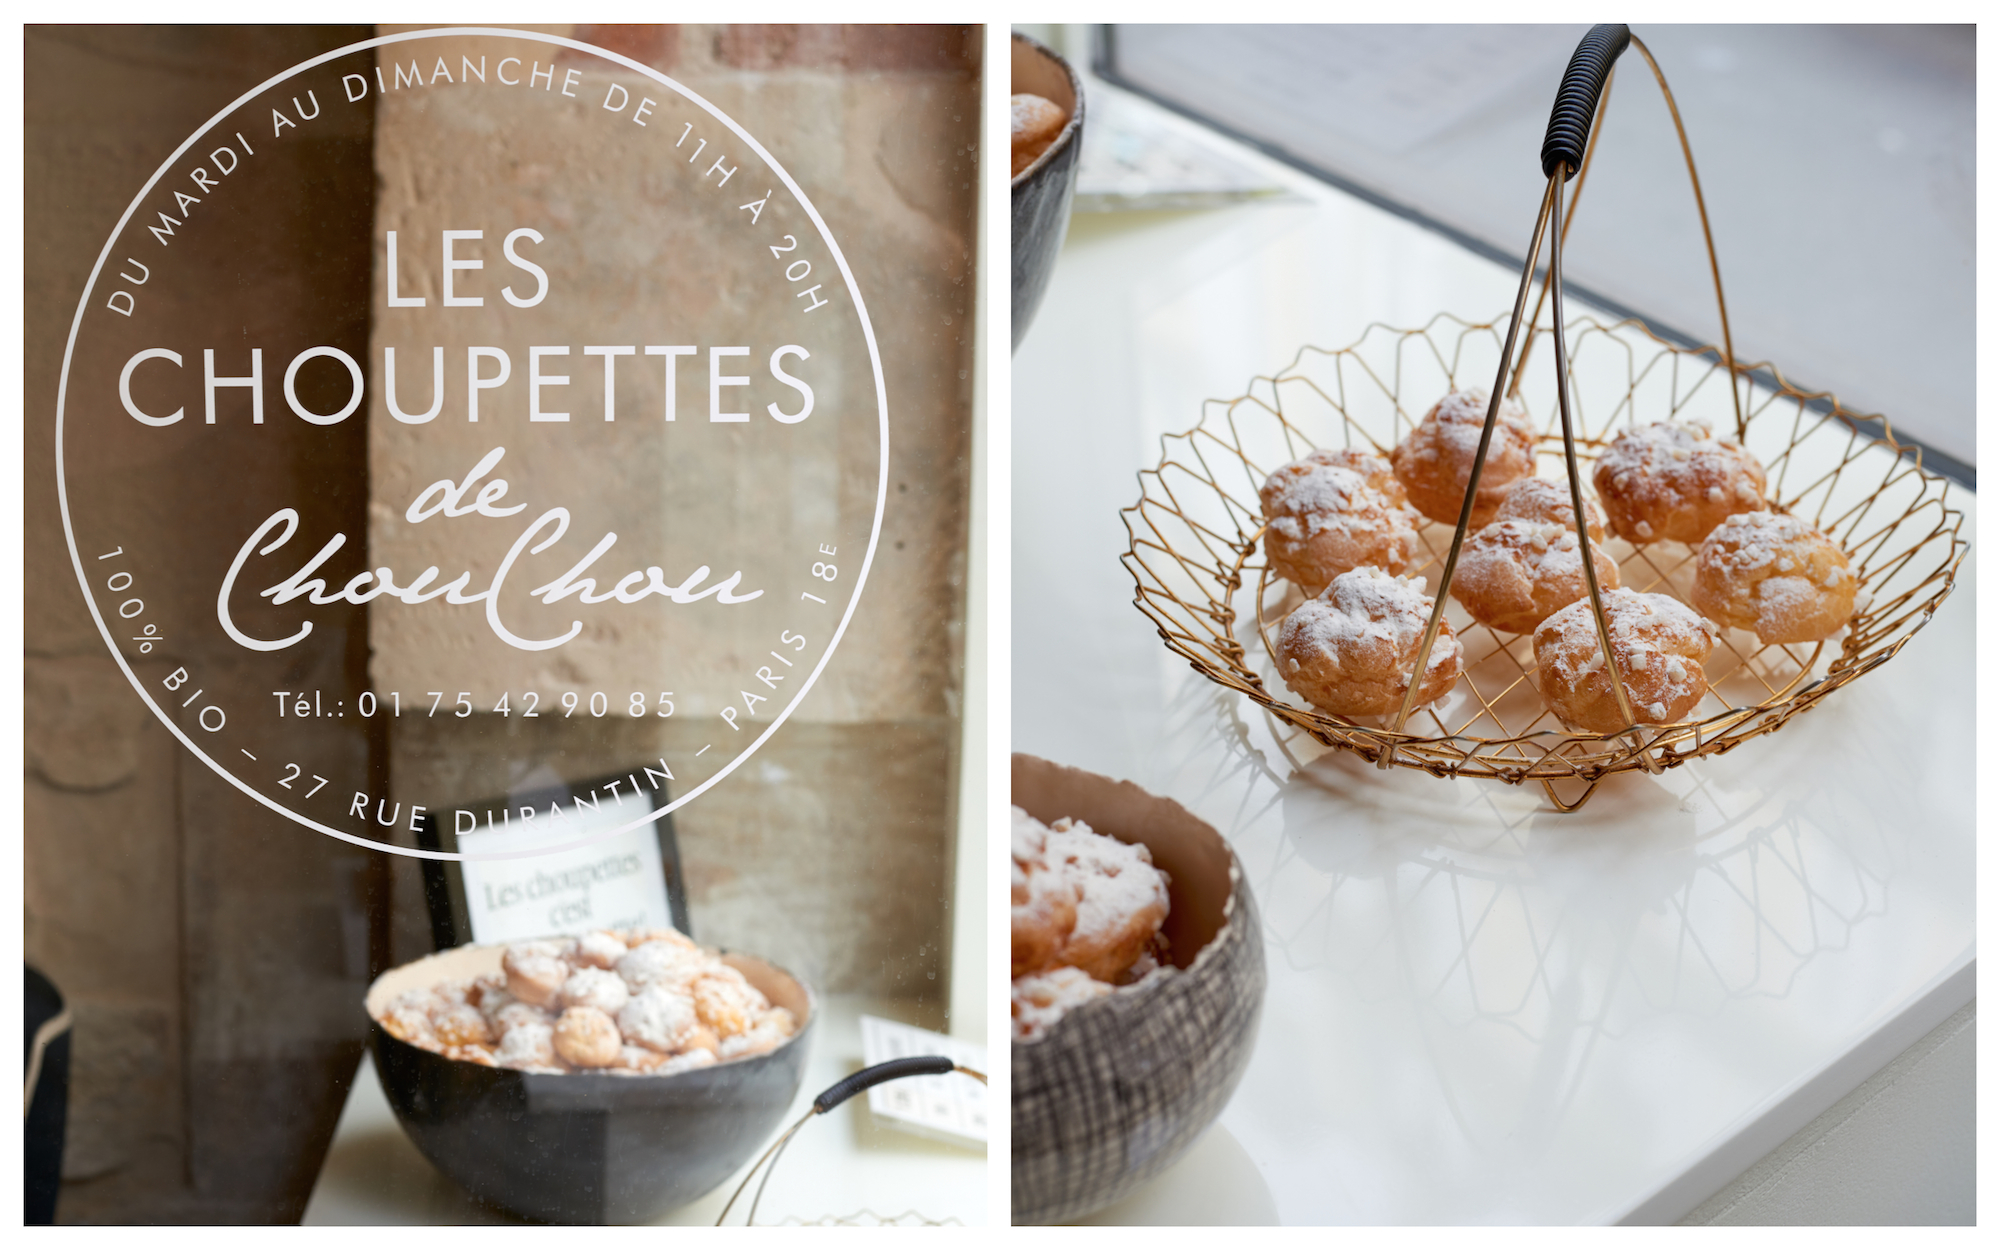 HiP Paris Blog visits Les Choupettes